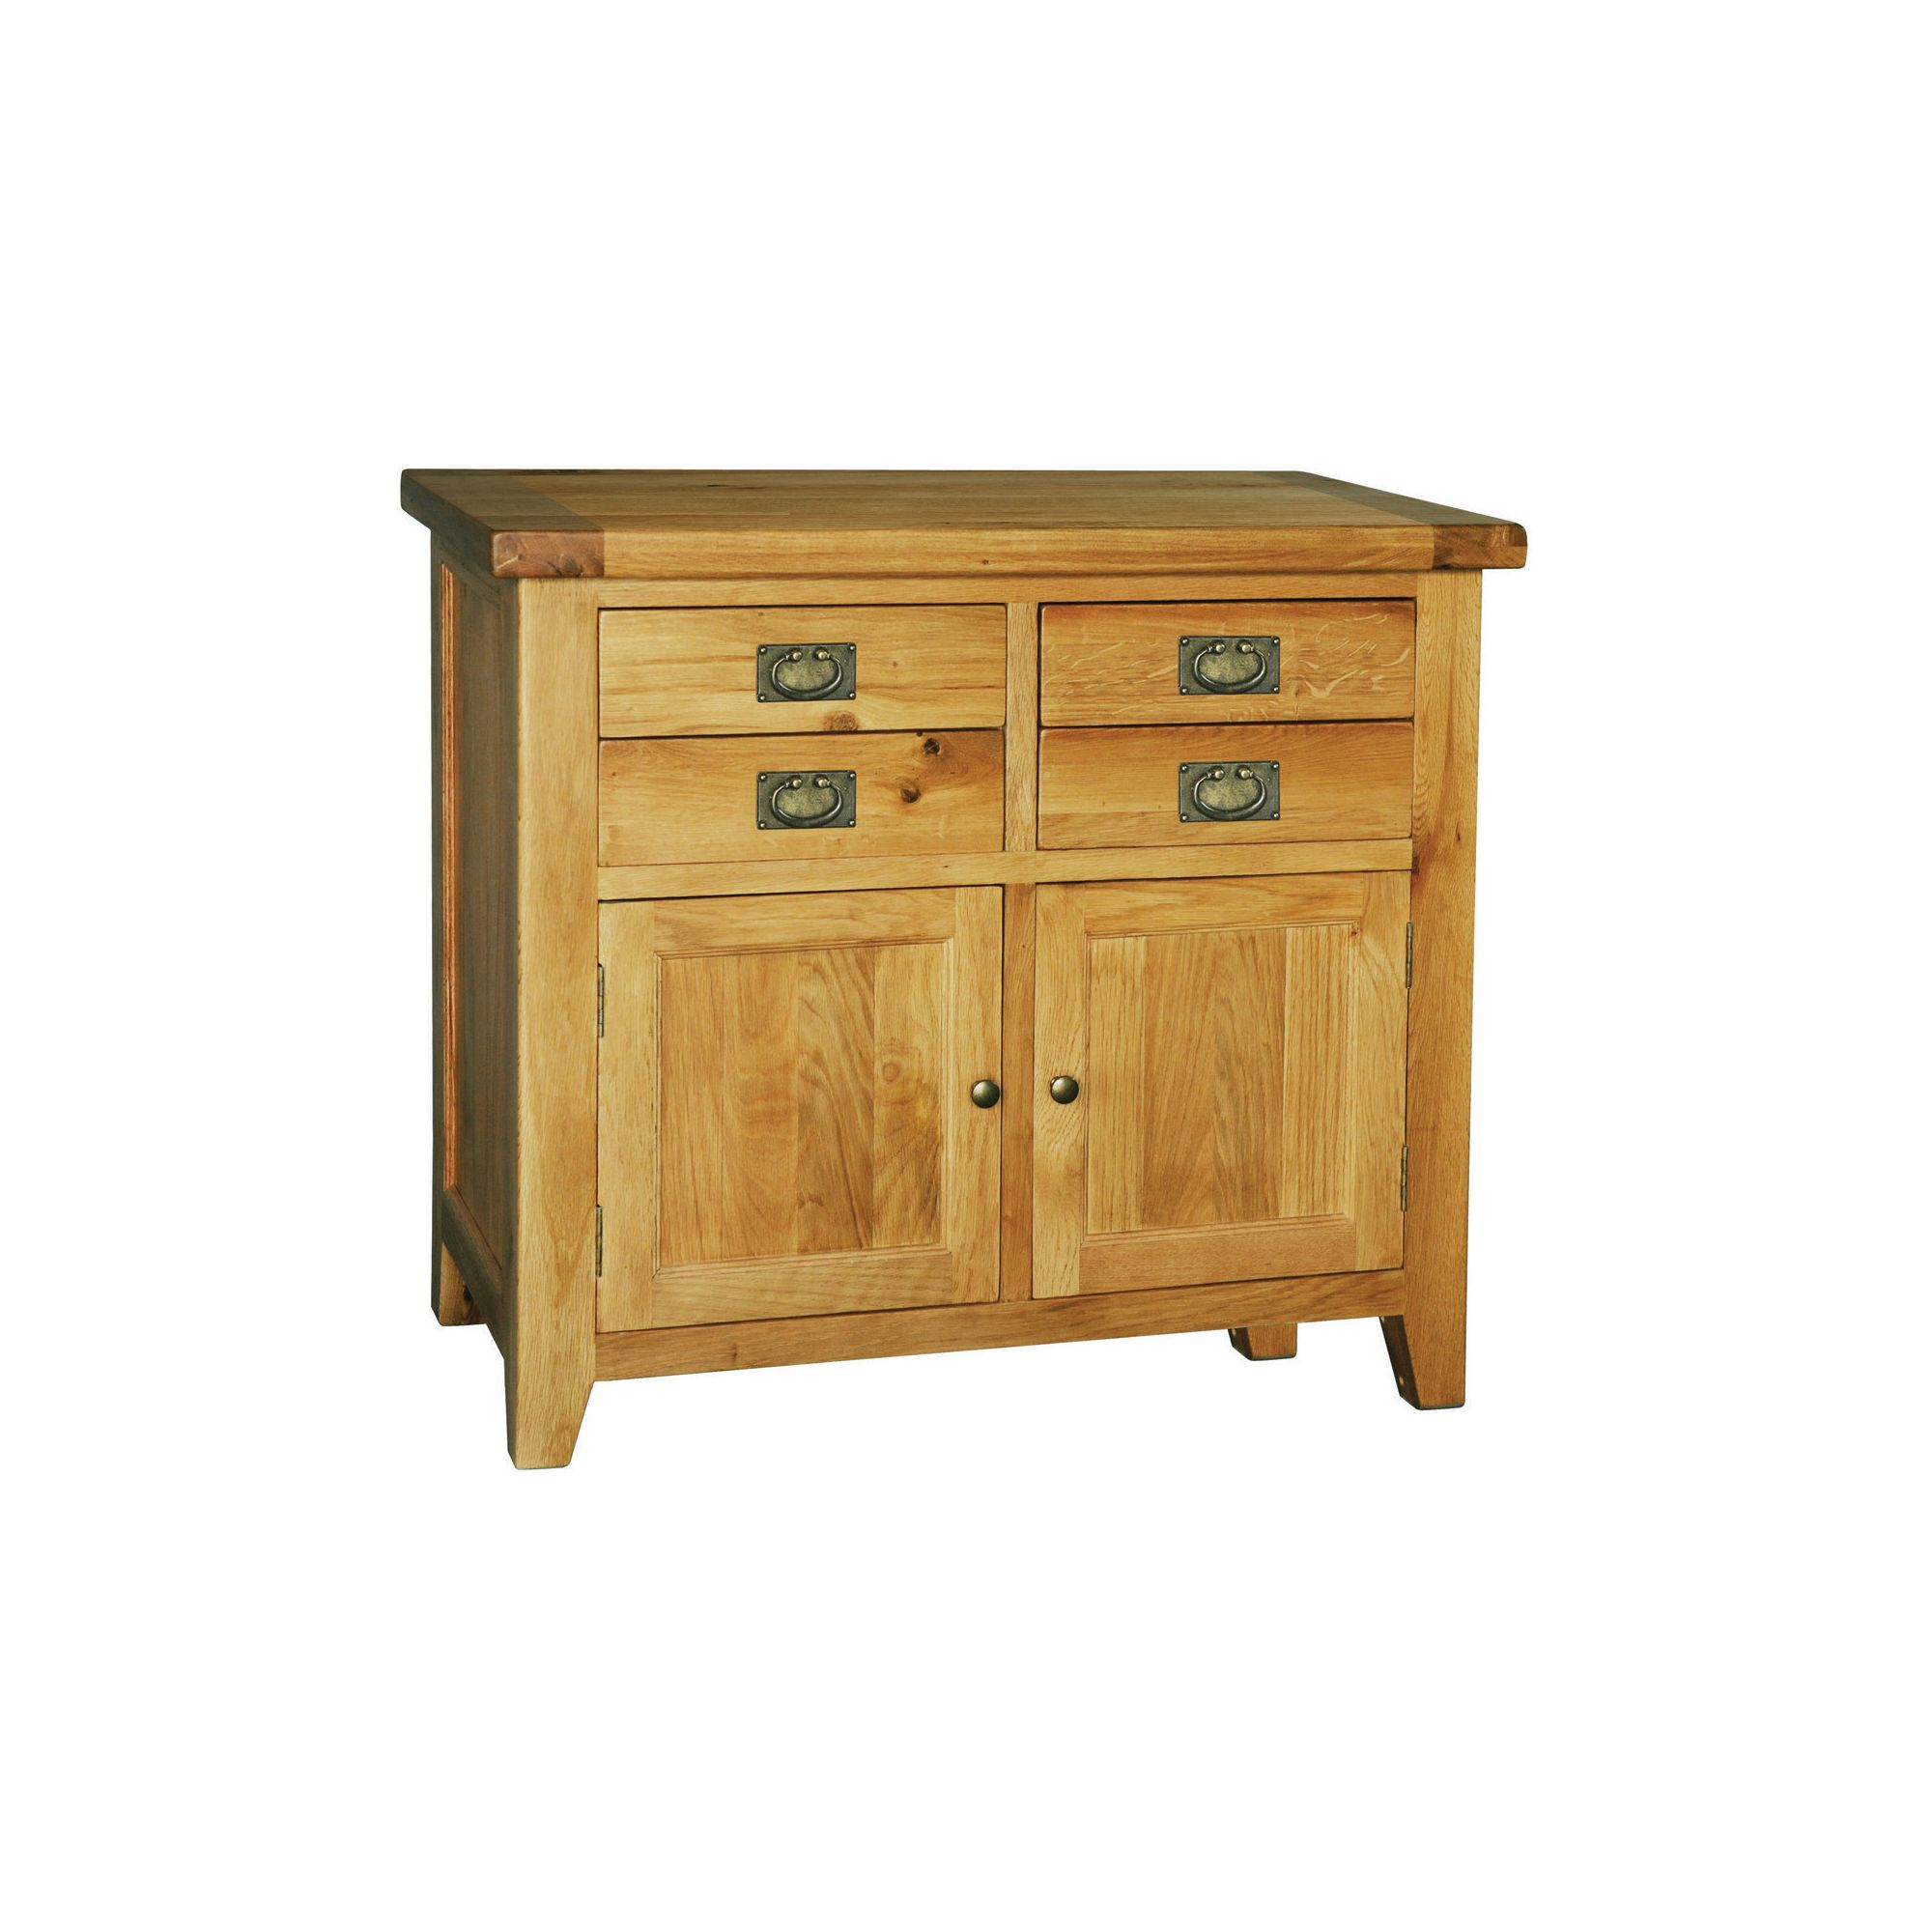 Hawkshead Calgary Small 2 Door 2 Drawer Buffet Chest at Tesco Direct